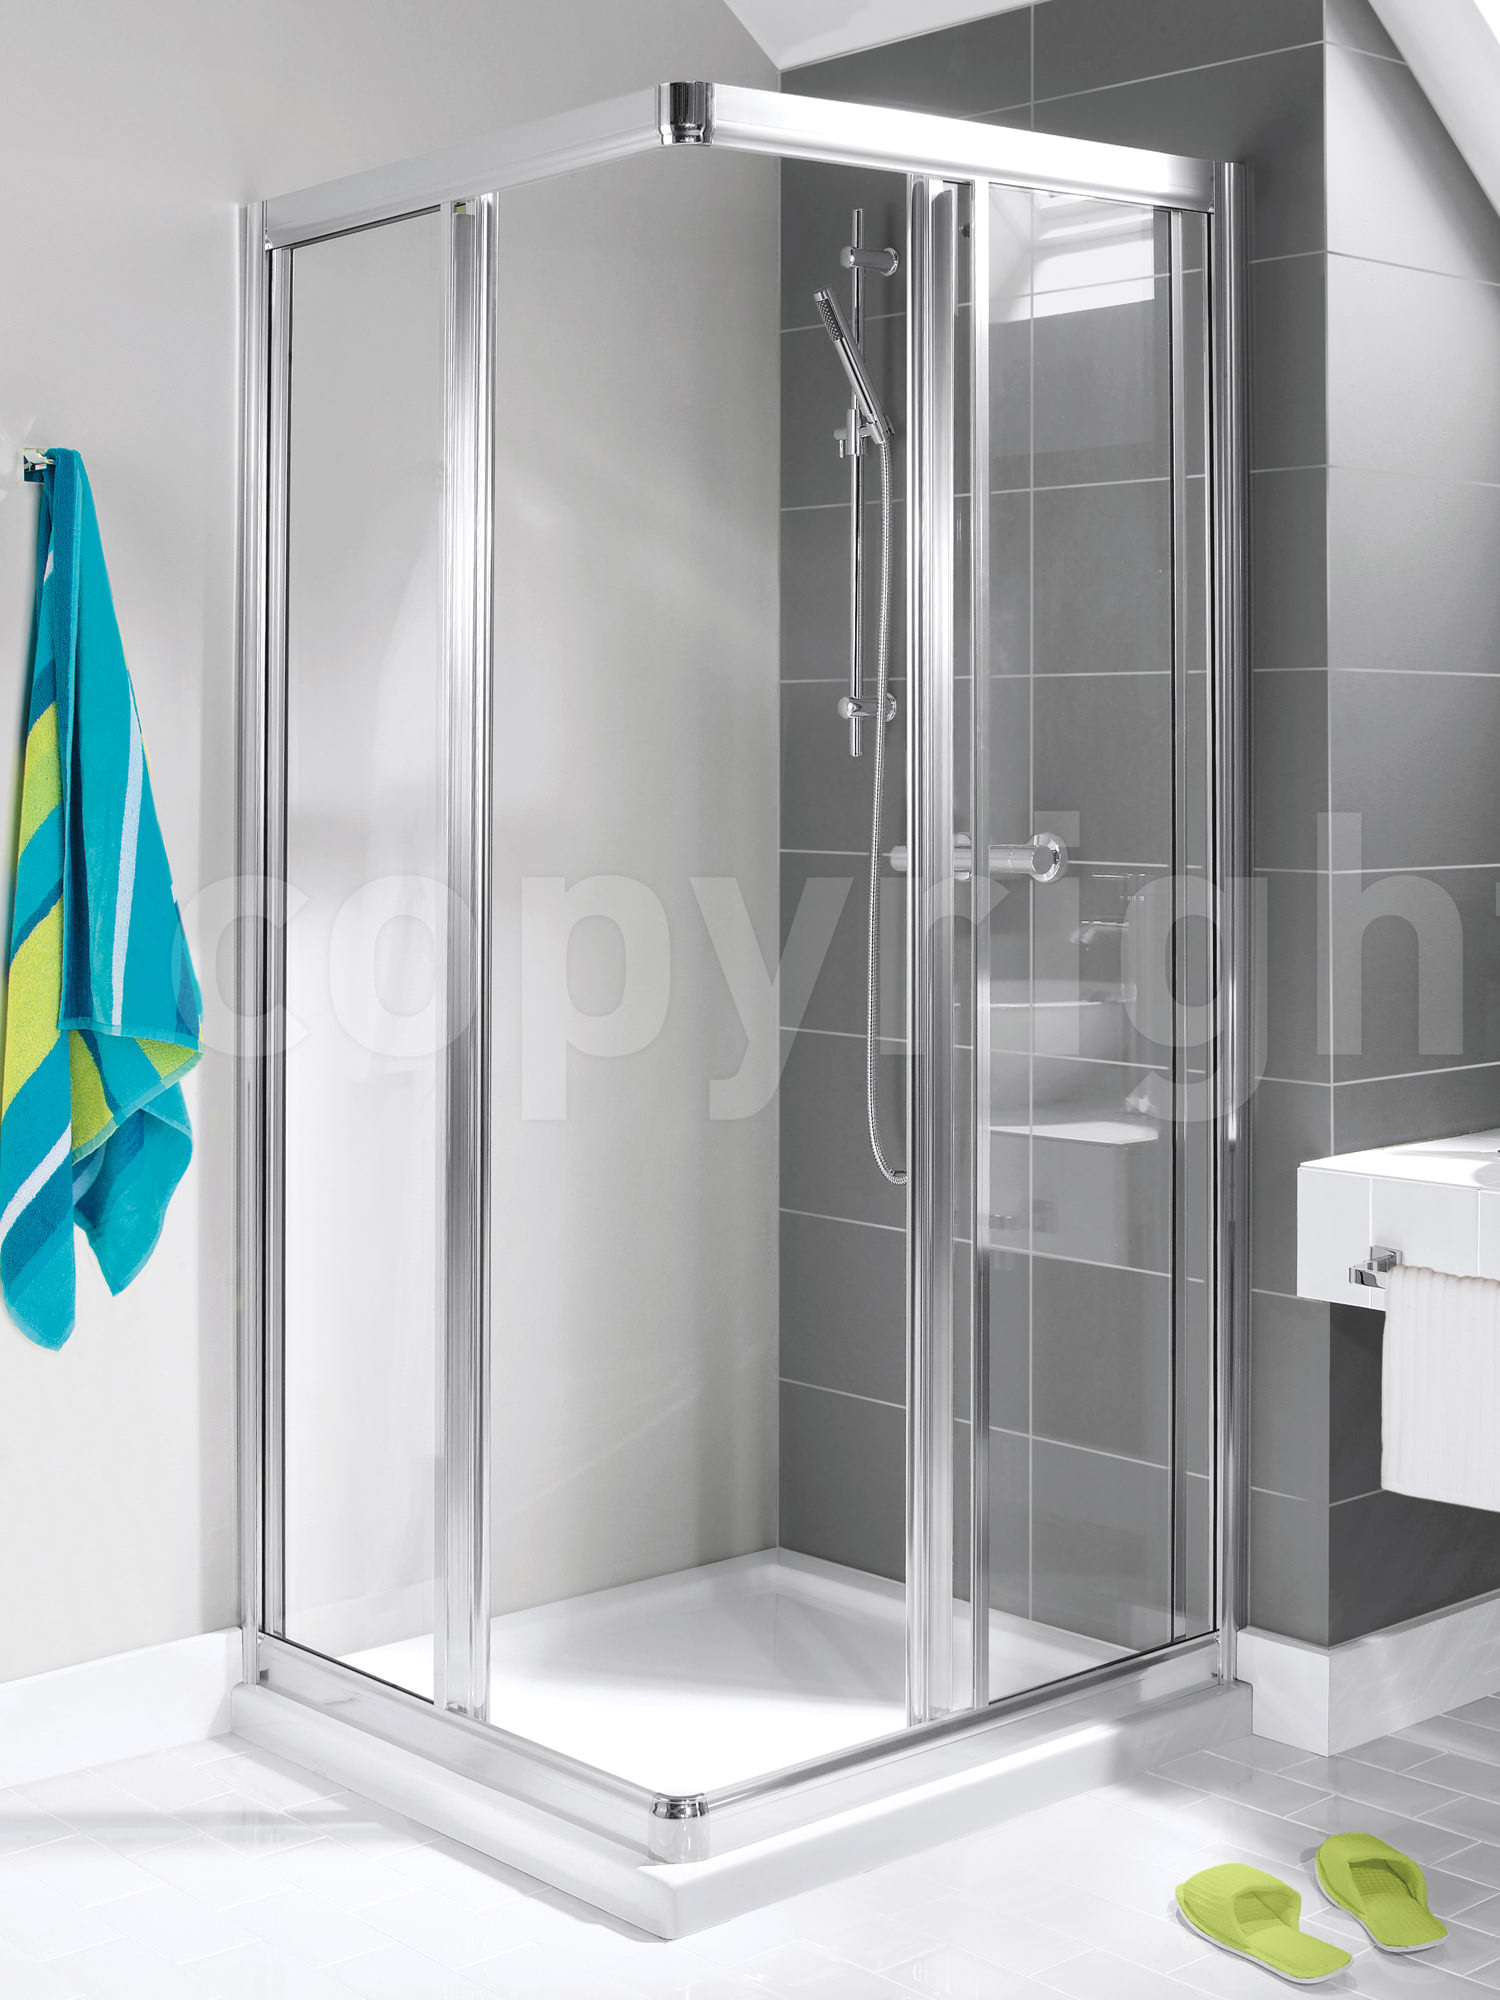 Bathroom Shower Safety Tub To Barrier Free Handheld